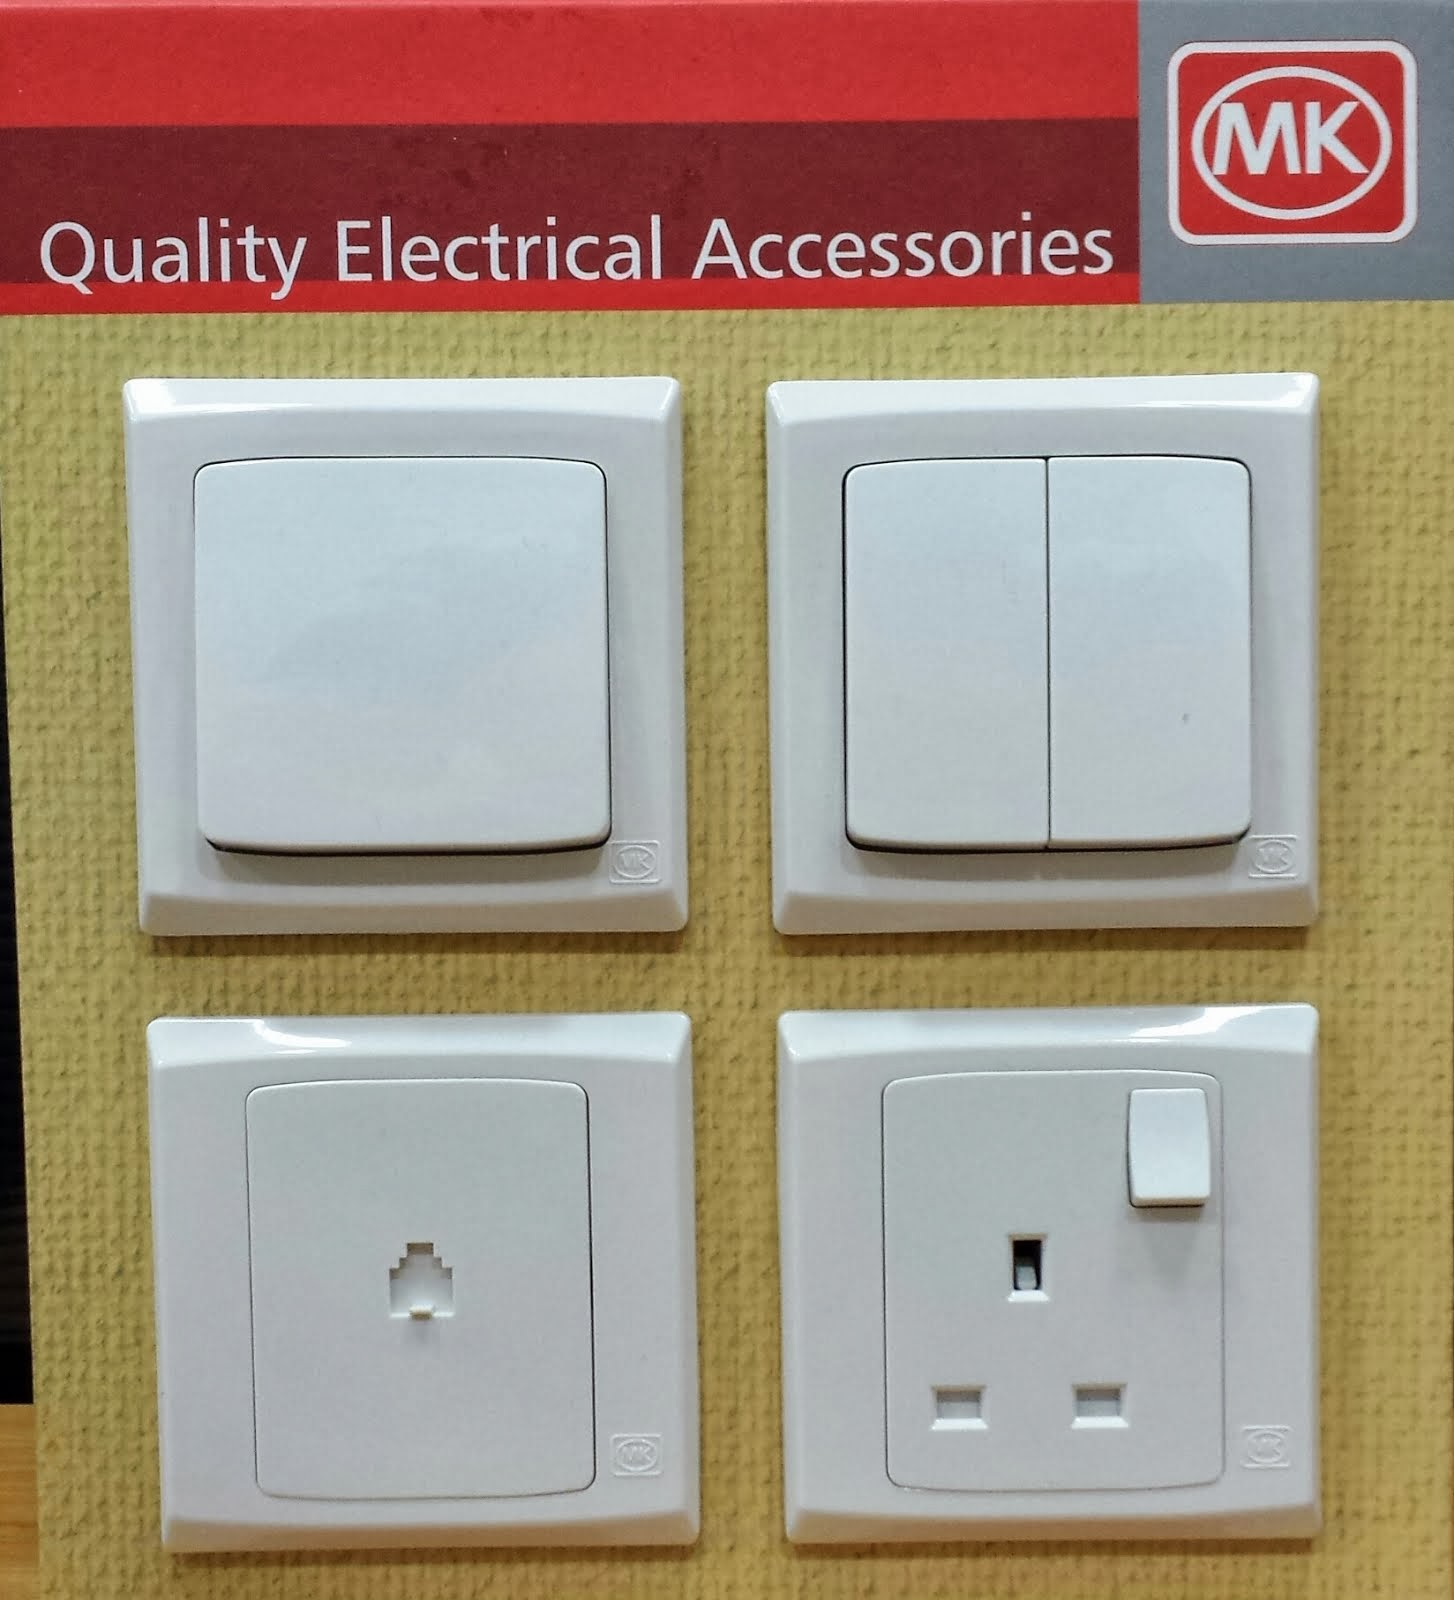 MK Brand Of Sockets & Light Switch